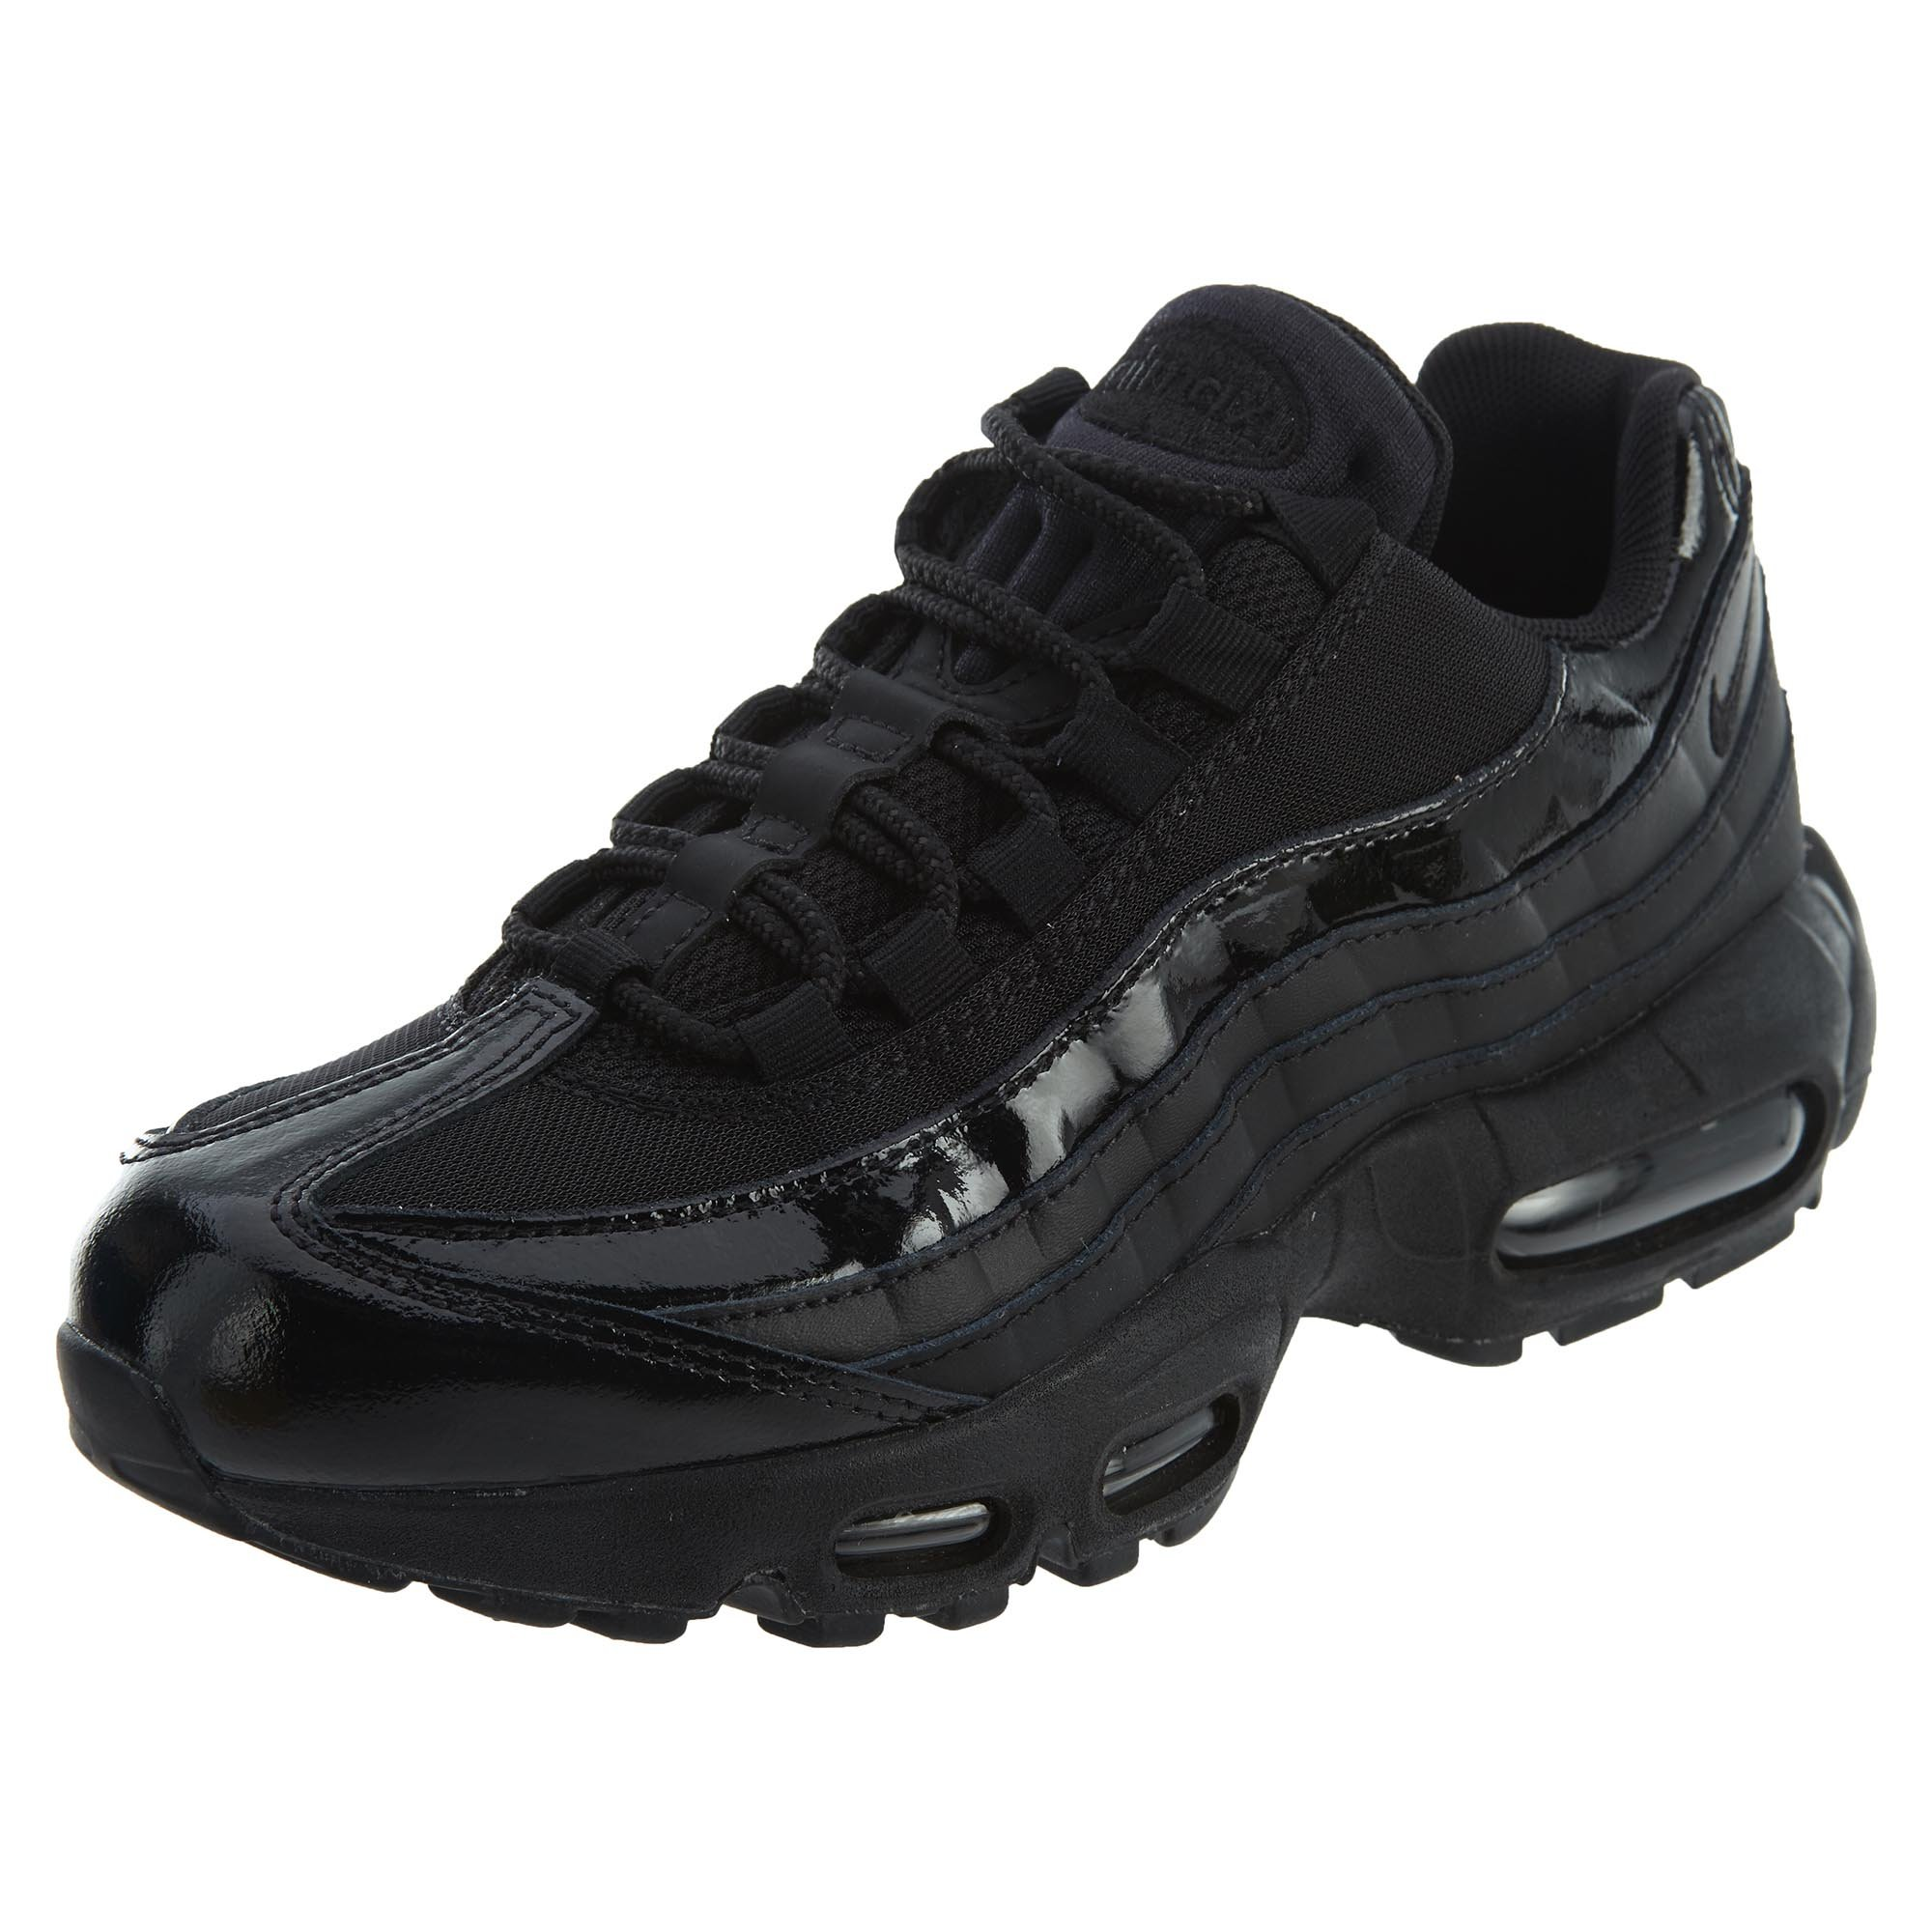 pretty nice 1891e 6f9d0 Galleon - NIKE Womens Air Max 95 Black Leather Trainers 12 US